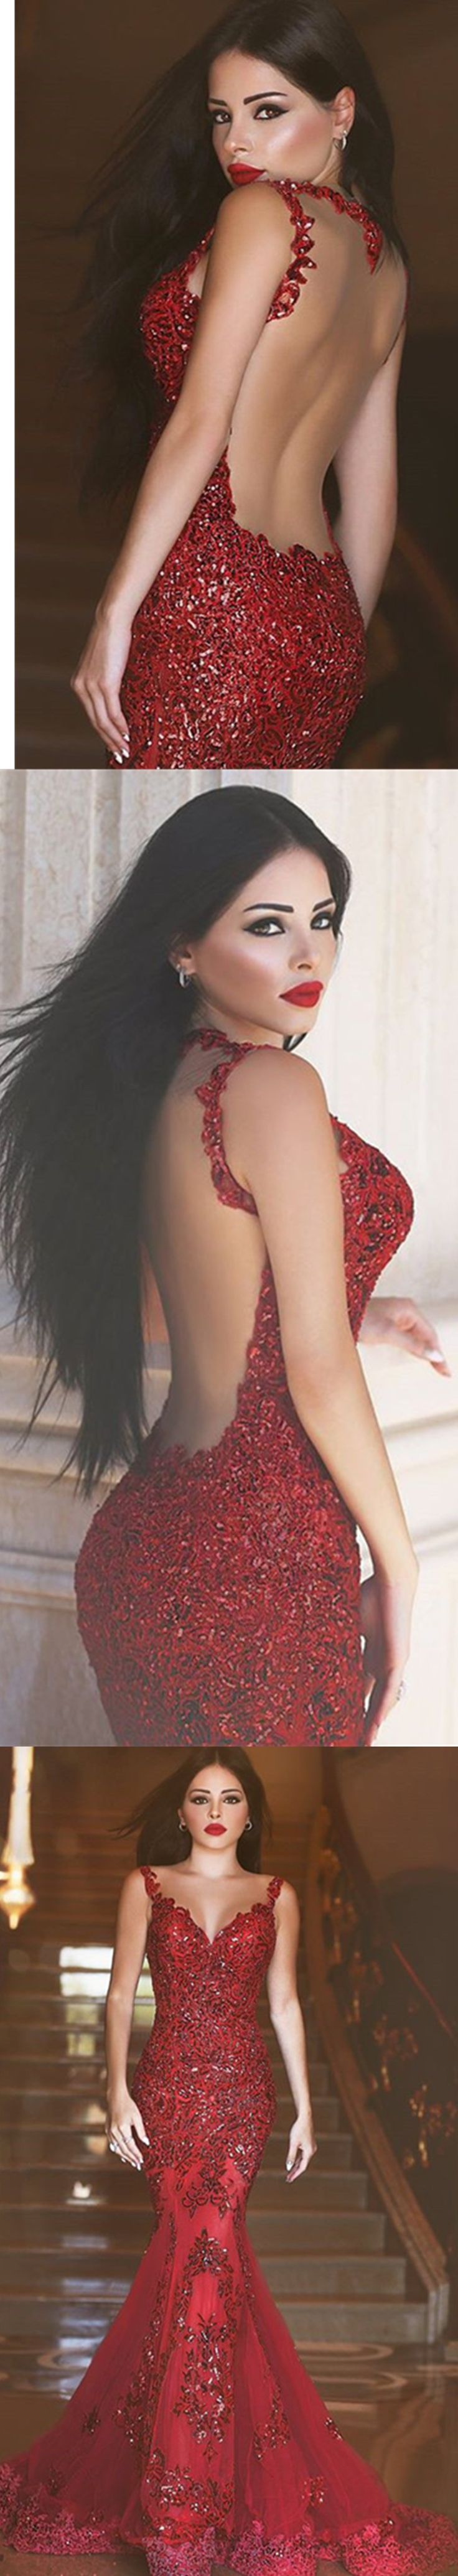 DIYouth Glamorous Red Mermaid Sequins Prom Dress 2016 Appliques Sweep Train, open back prom dresses, Mermaid wedding dresses, sexy evening dresses, backless party dresses